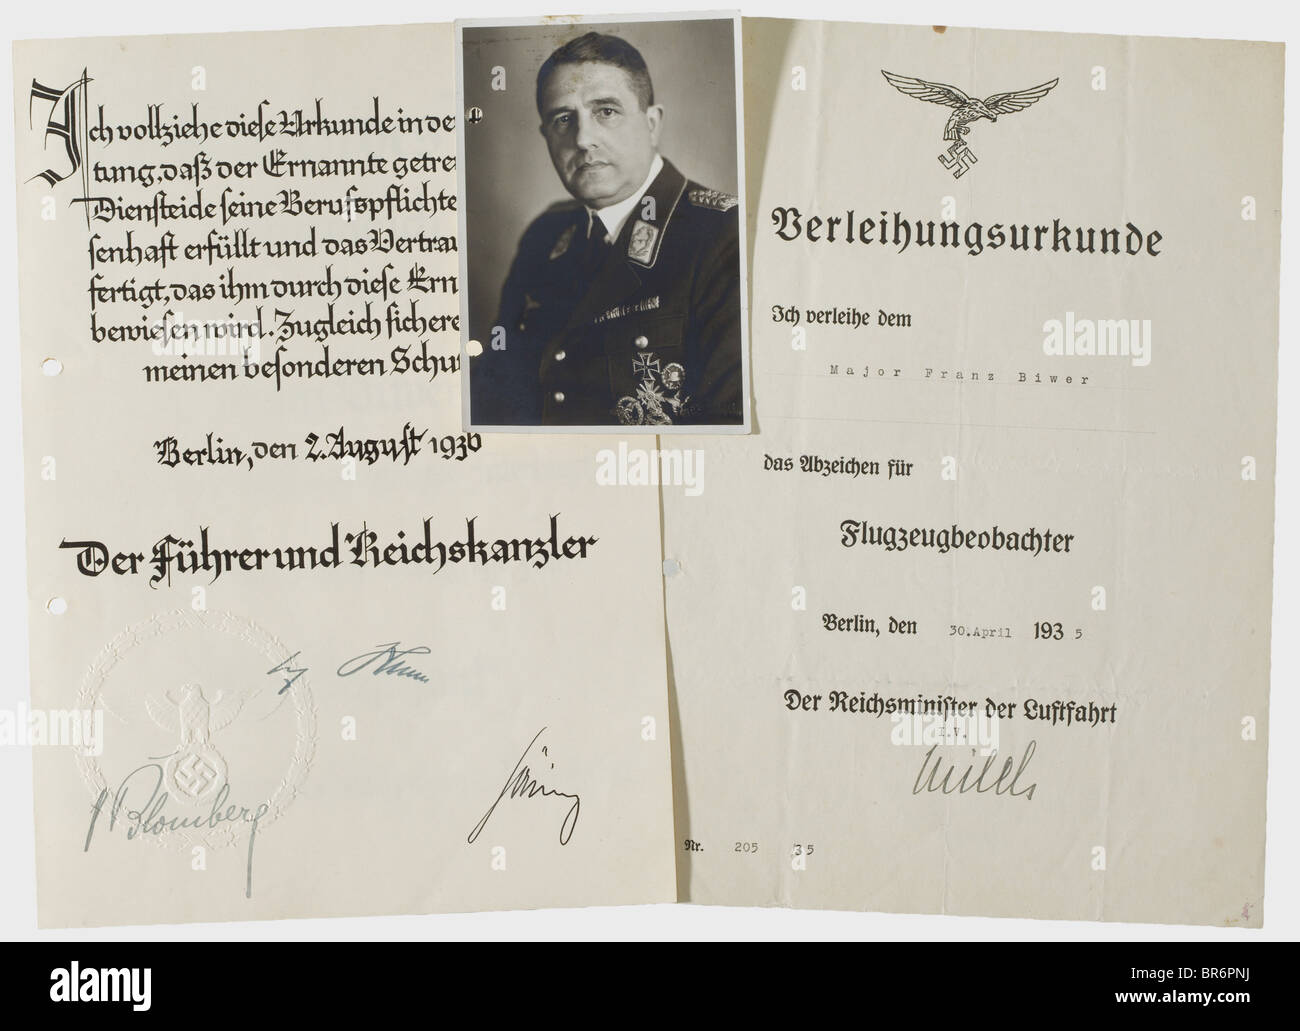 Brigadier Franz Biwer - award documents and possession certificates, for the Iron Cross 1st and 2nd Class of 1914, - Stock Image